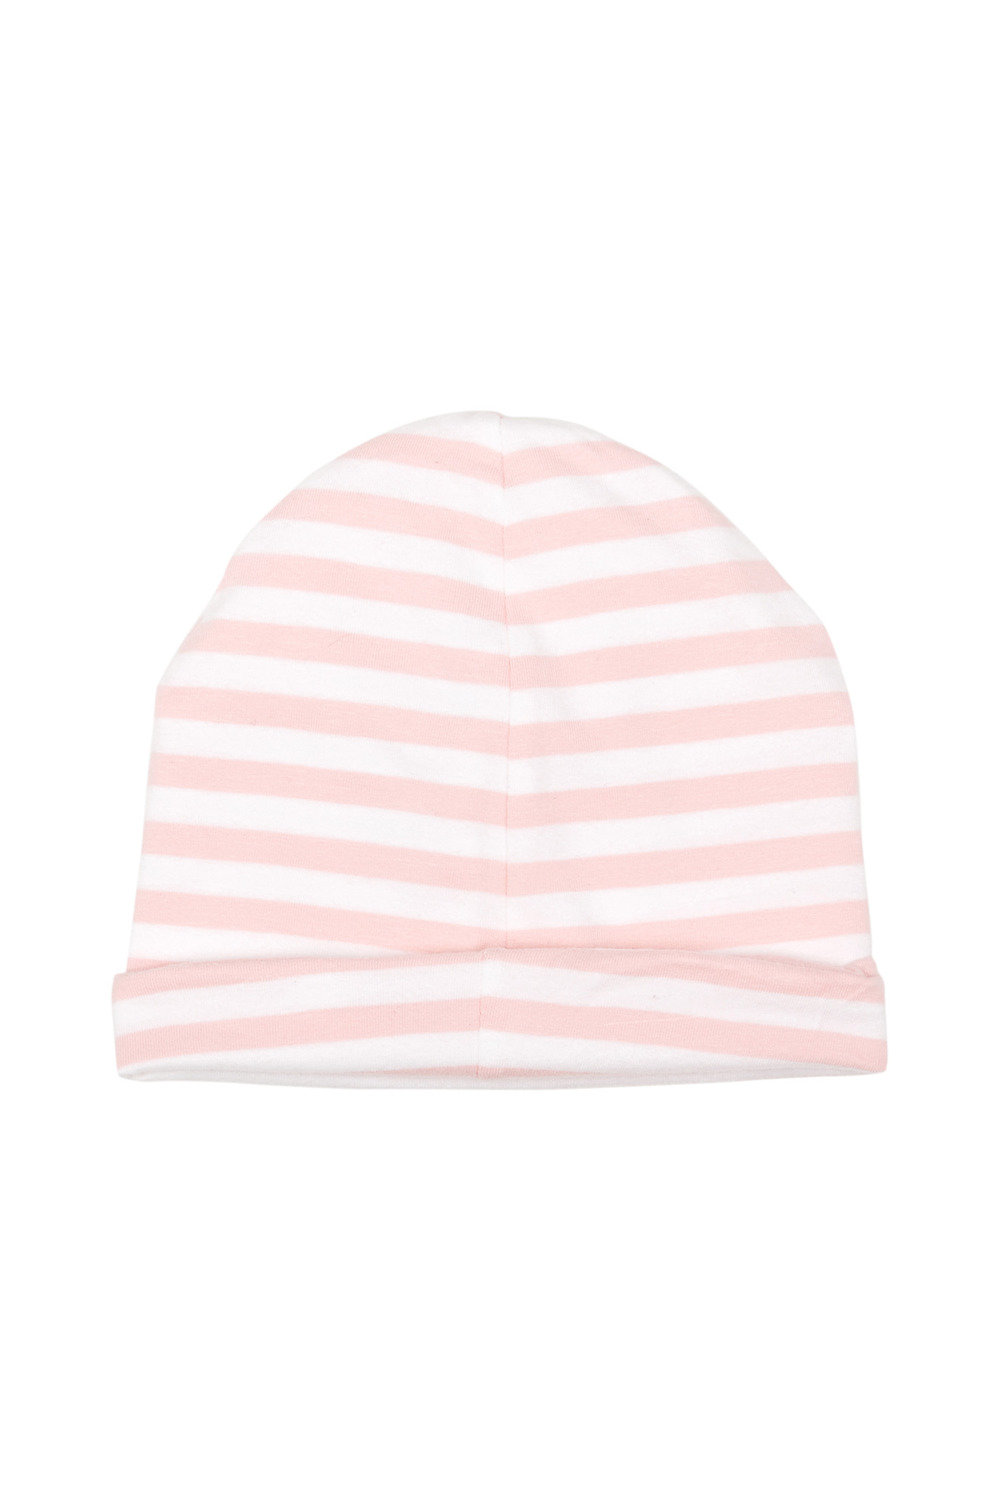 8e8f8dca27b Pumpkin Patch Stripe Organic Cotton Beanie Online